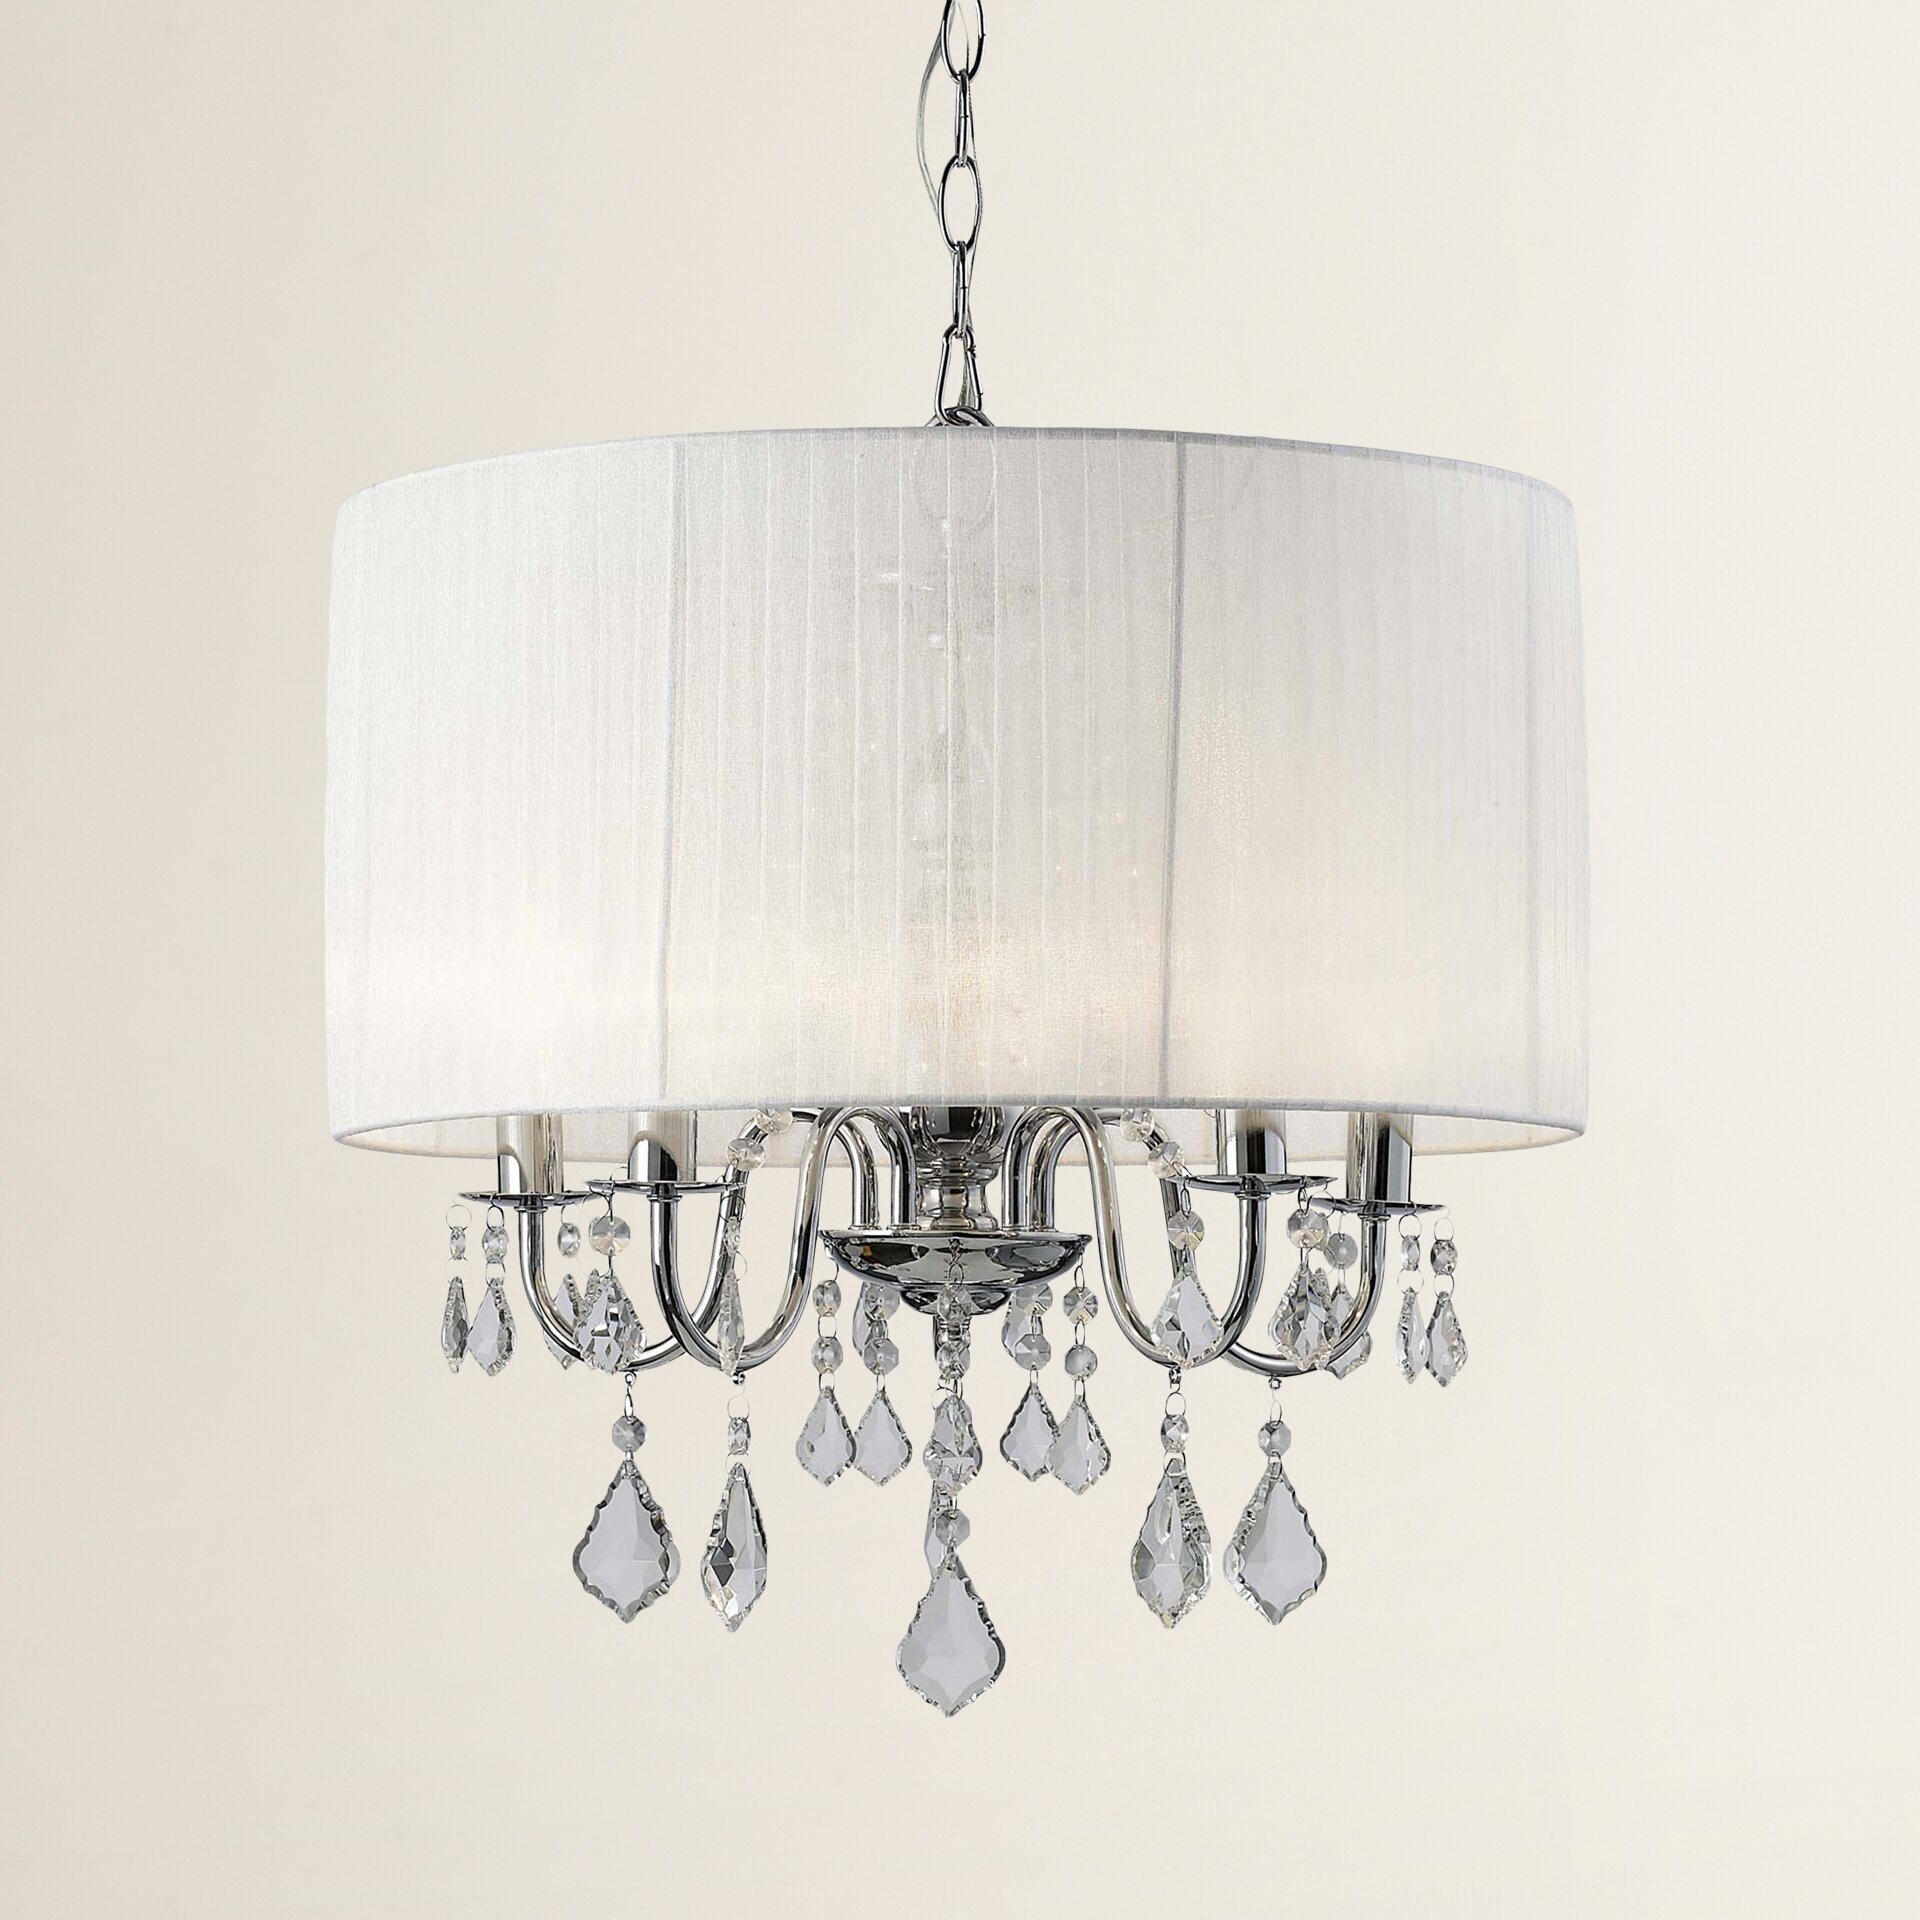 Wayfair Chandelier: House Of Hampton Middleton 5 Light Drum Chandelier